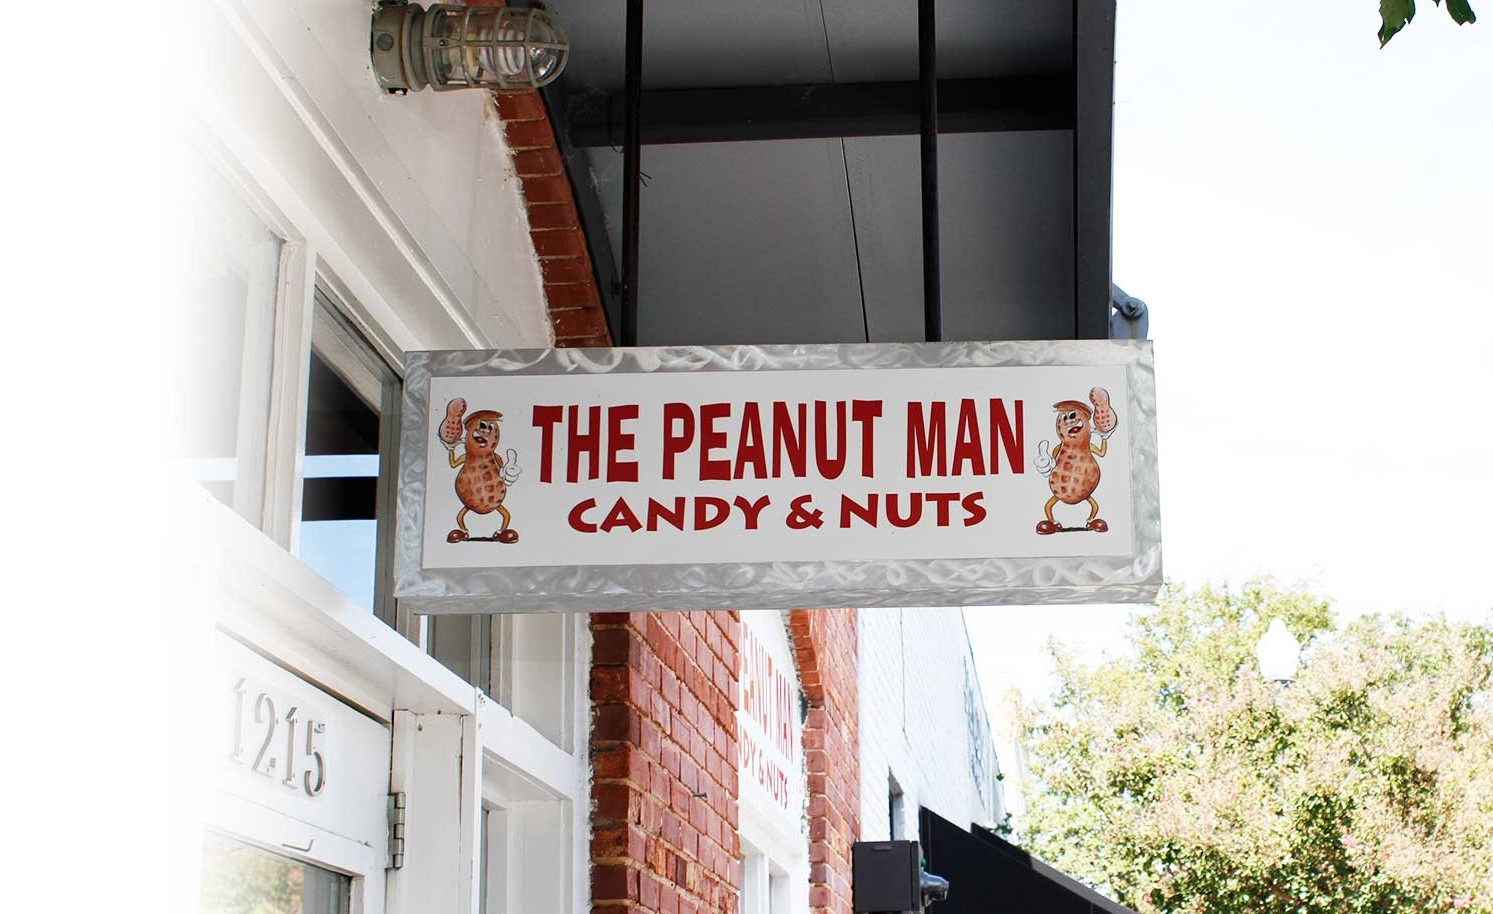 The Peanut Man candy & nuts sign over entrance